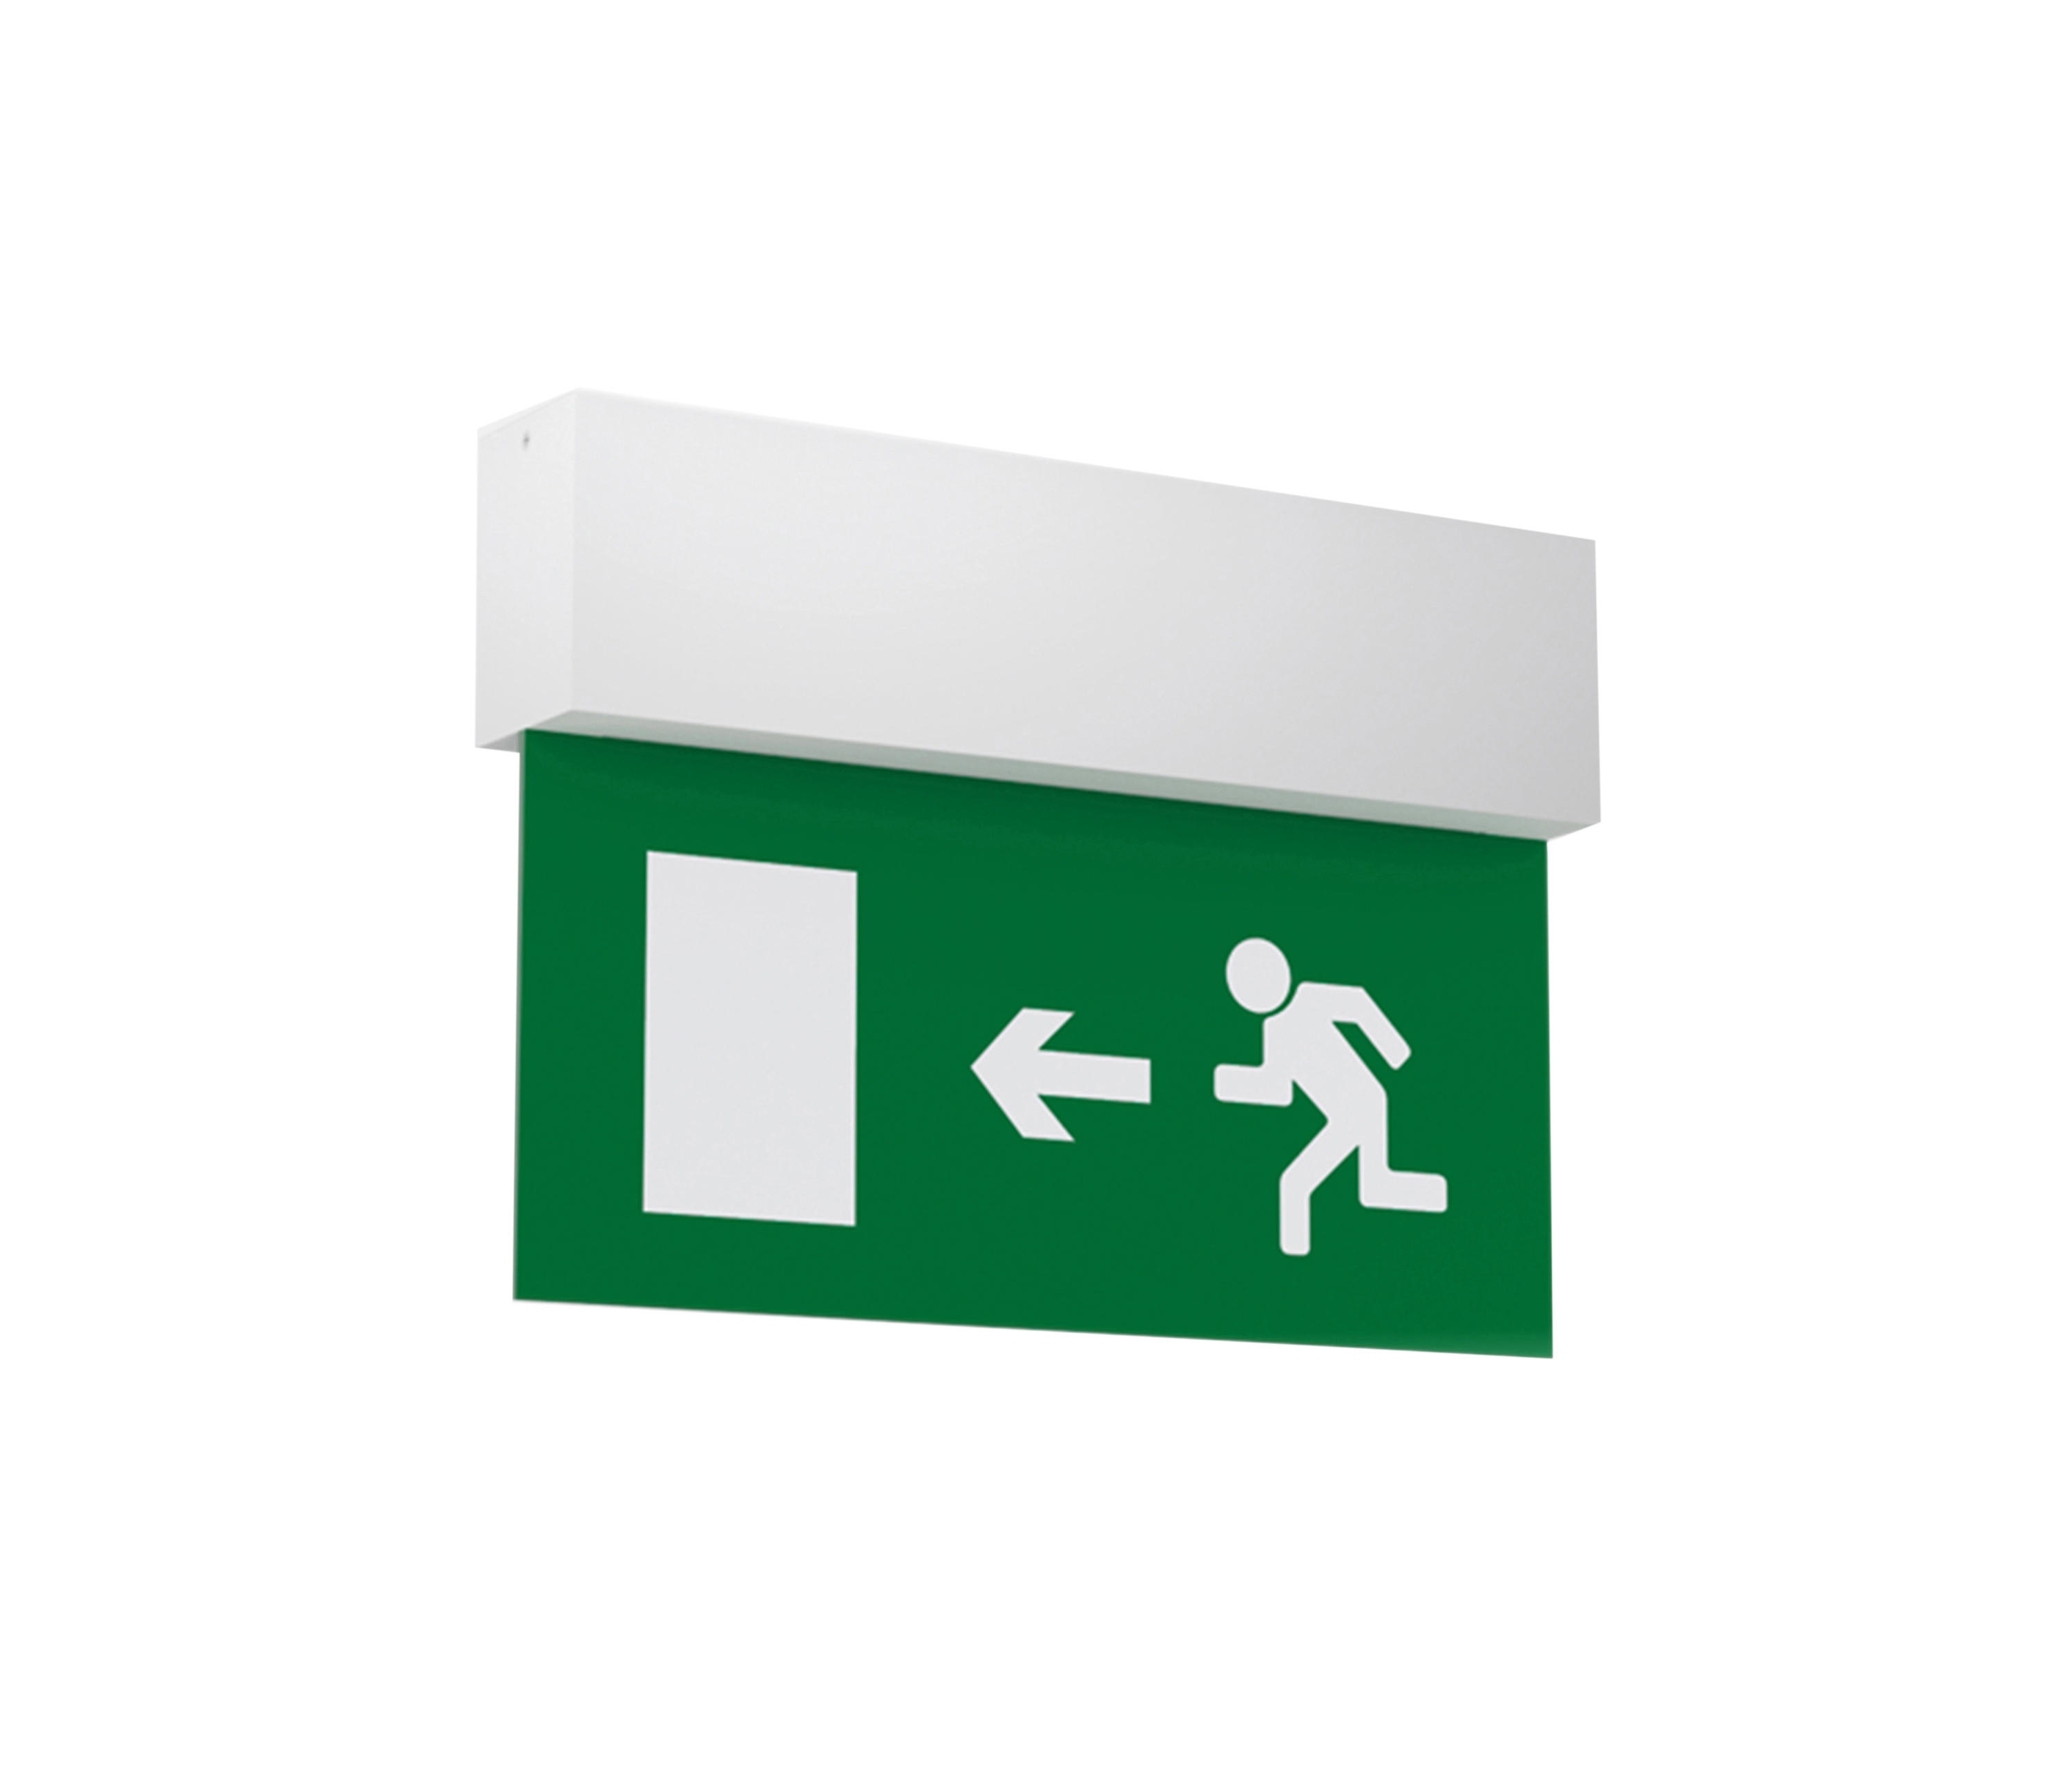 Wall Mounted Emergency Lights : LS WALL-MOUNTED - Wall-mounted emergency lights from O/M Architonic